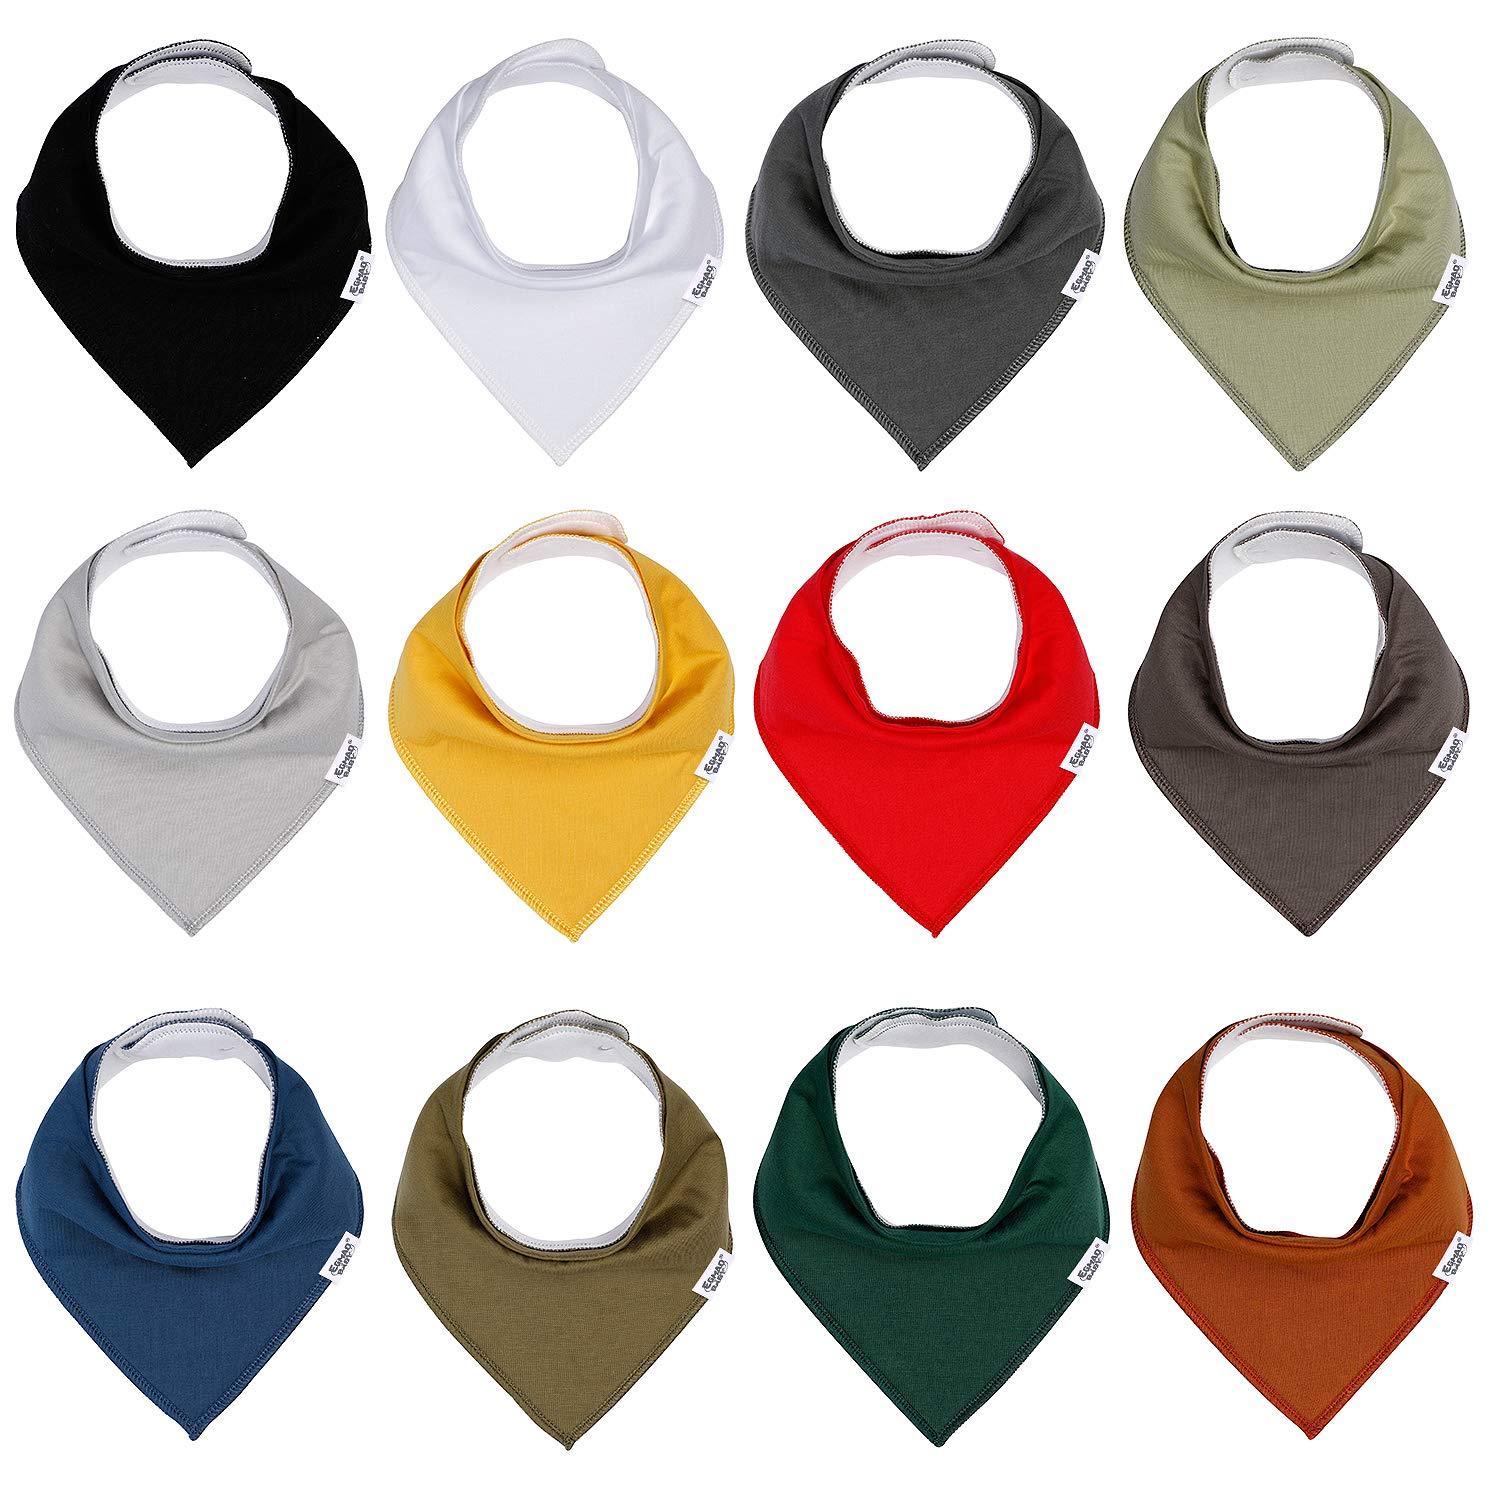 Baby Bandana Drool Bibs for Boys and Girls, Solid Colors, Unisex 12 Pack Baby Shower Gift Set for Teething and Drooling, Organic Cotton Bibs,Soft Absorbent and Hypoallergenic